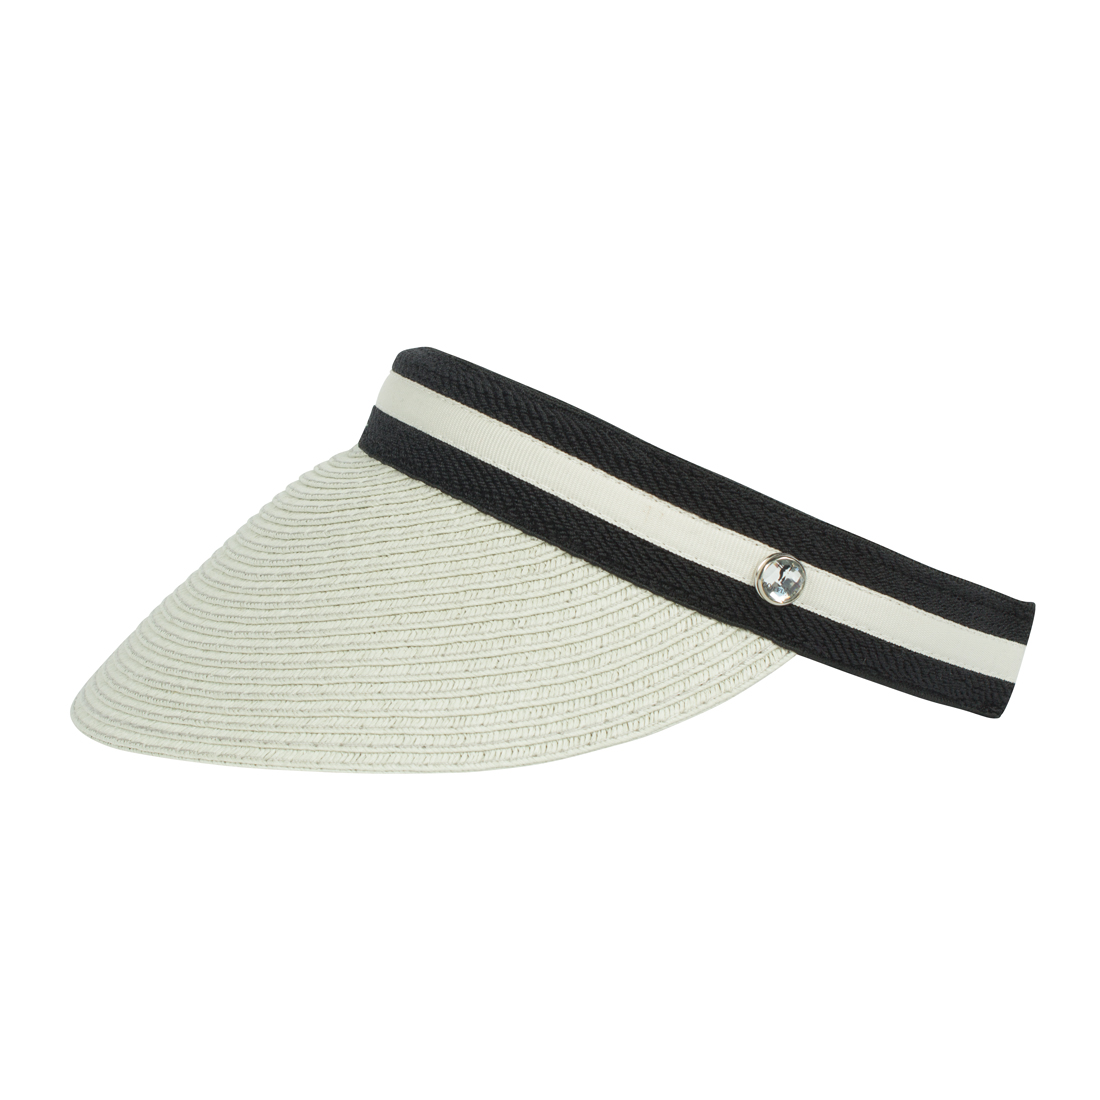 Elegant ladies' golf visor